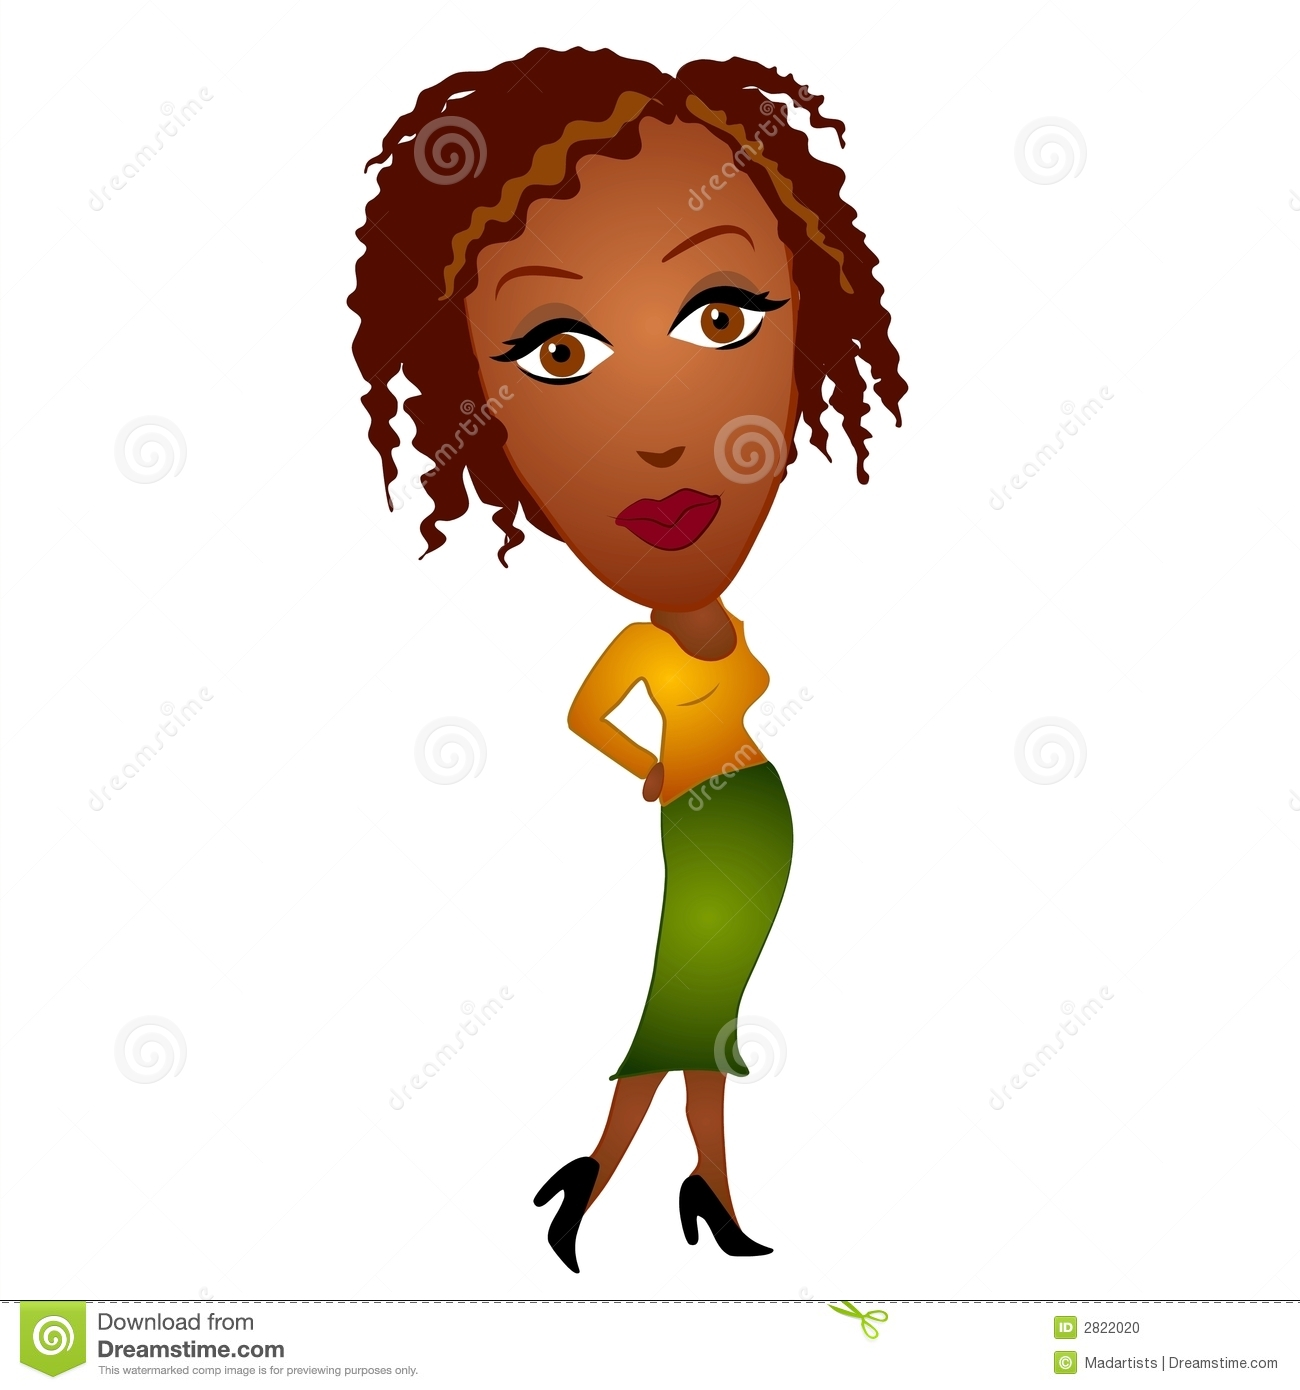 Clip Art Illustration Of An African American Woman Wearing A Yellow